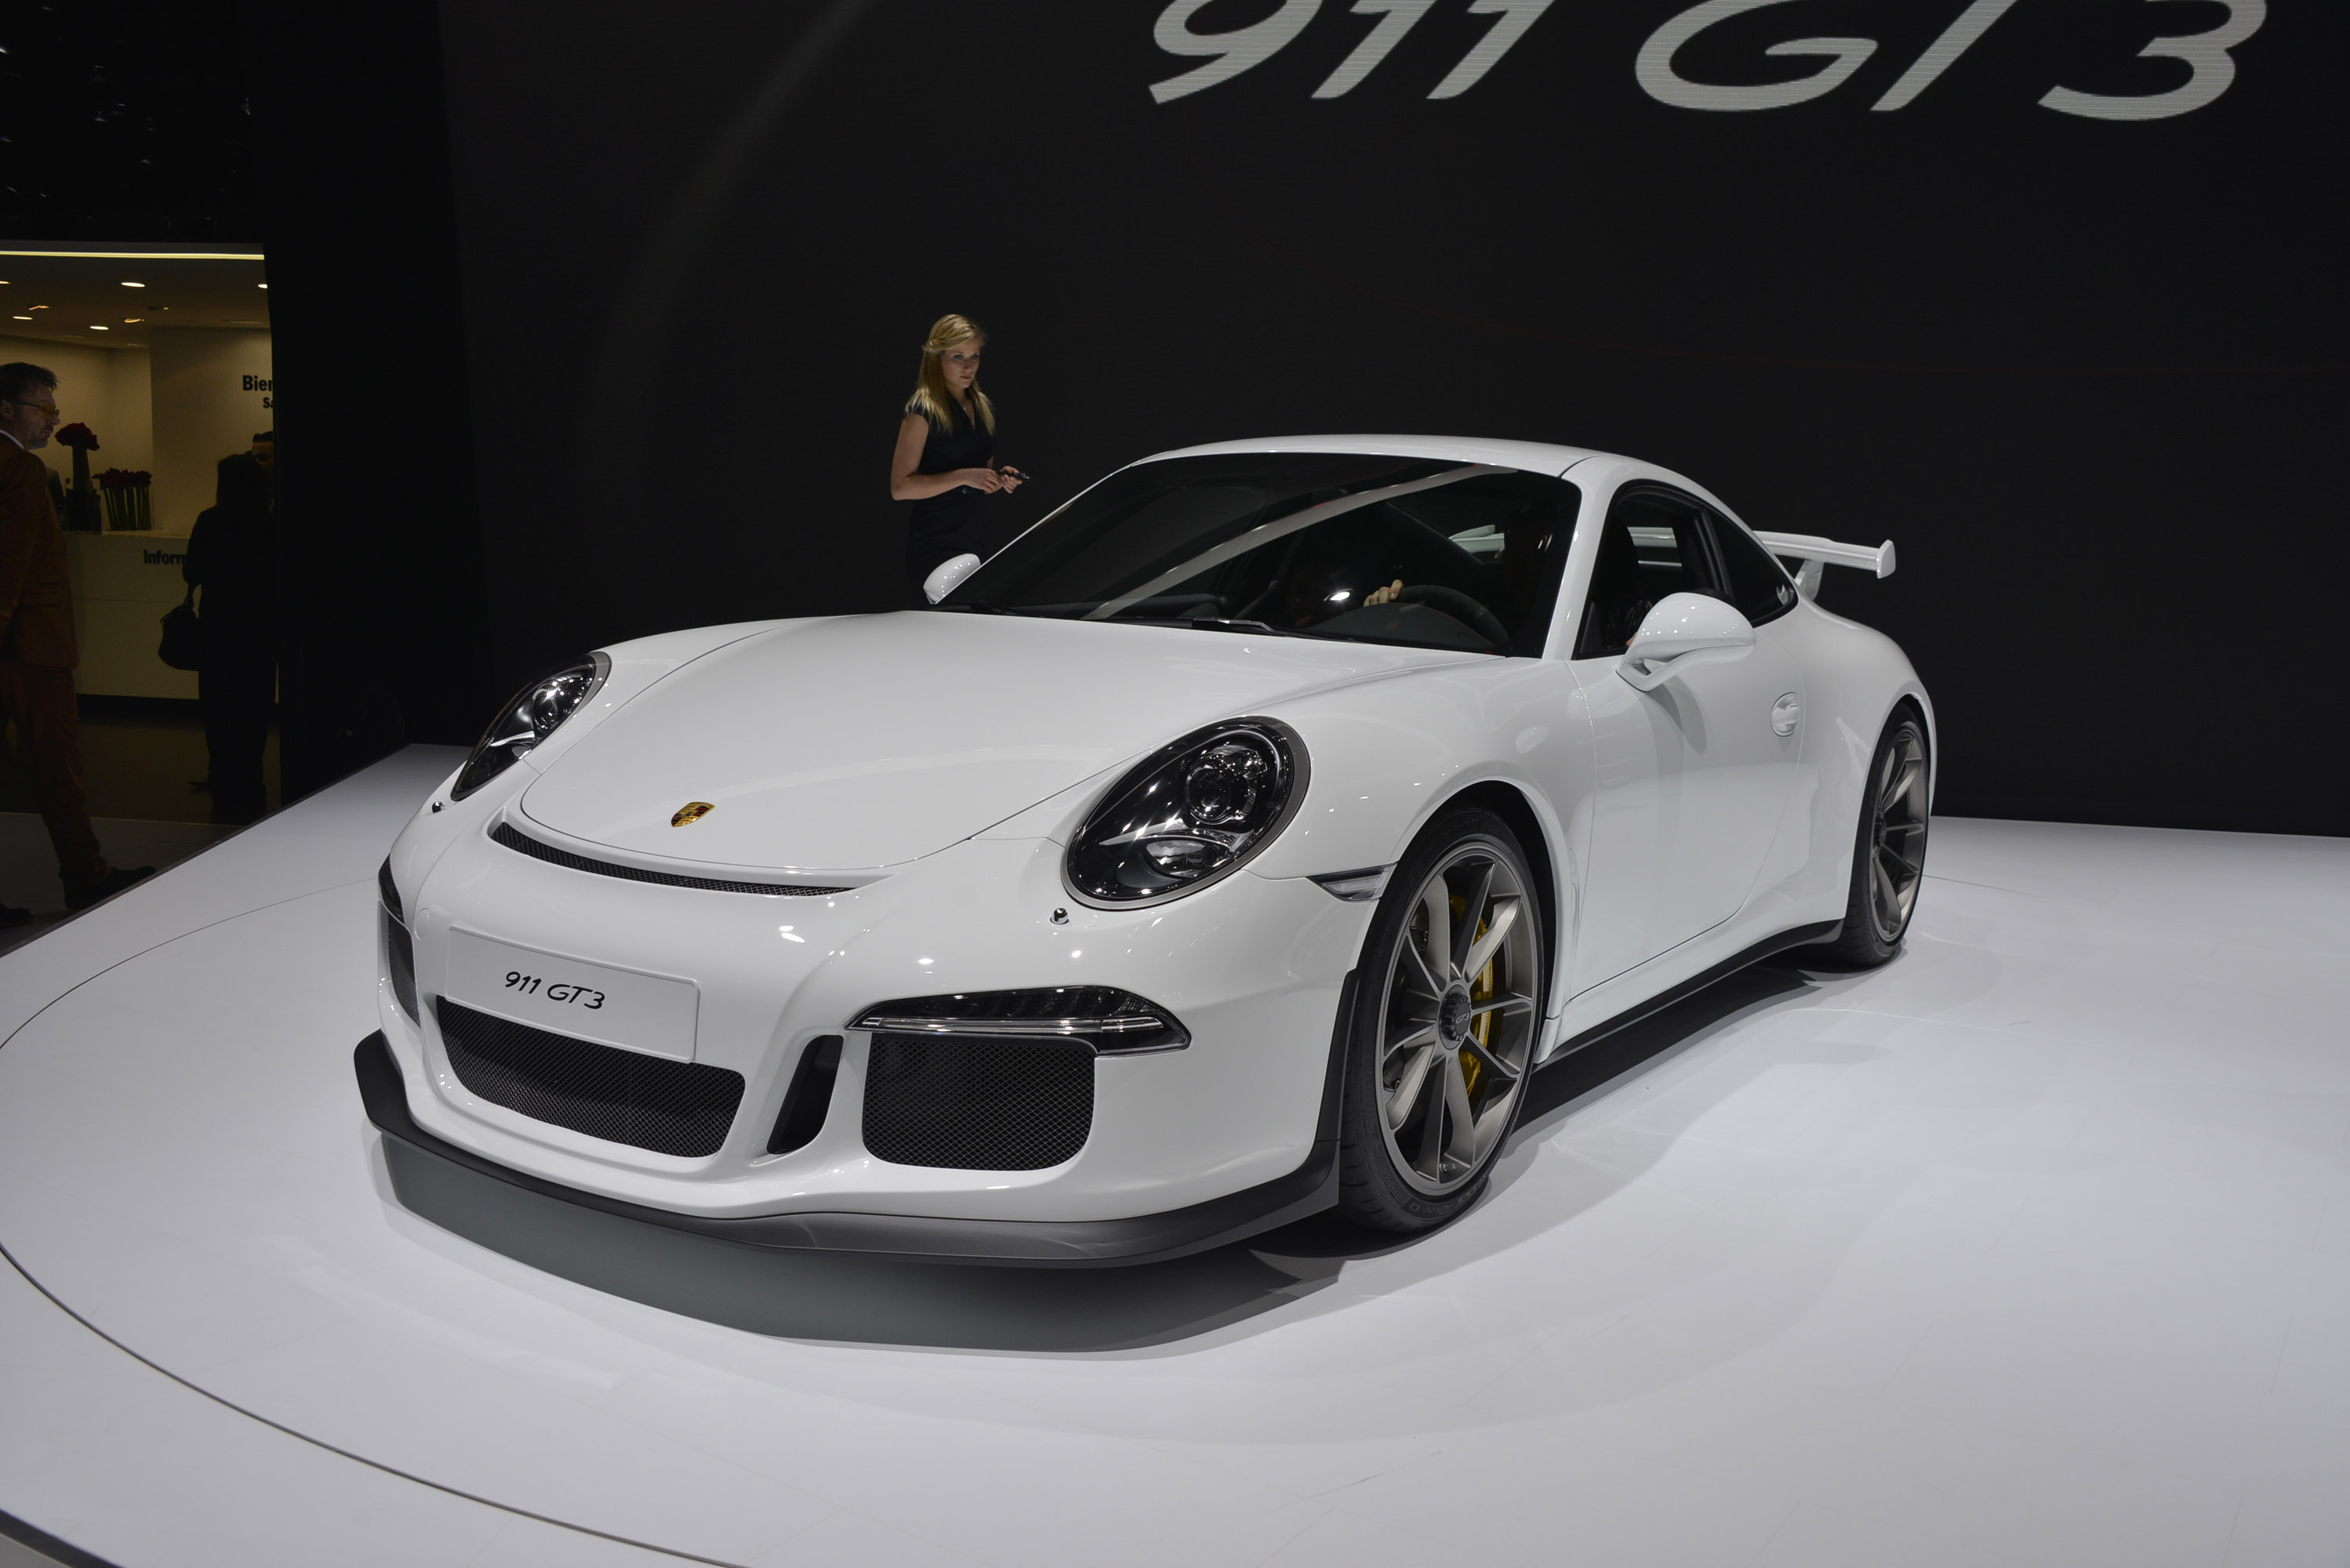 2014 porsche 911 gt3 price 137 303 video. Black Bedroom Furniture Sets. Home Design Ideas